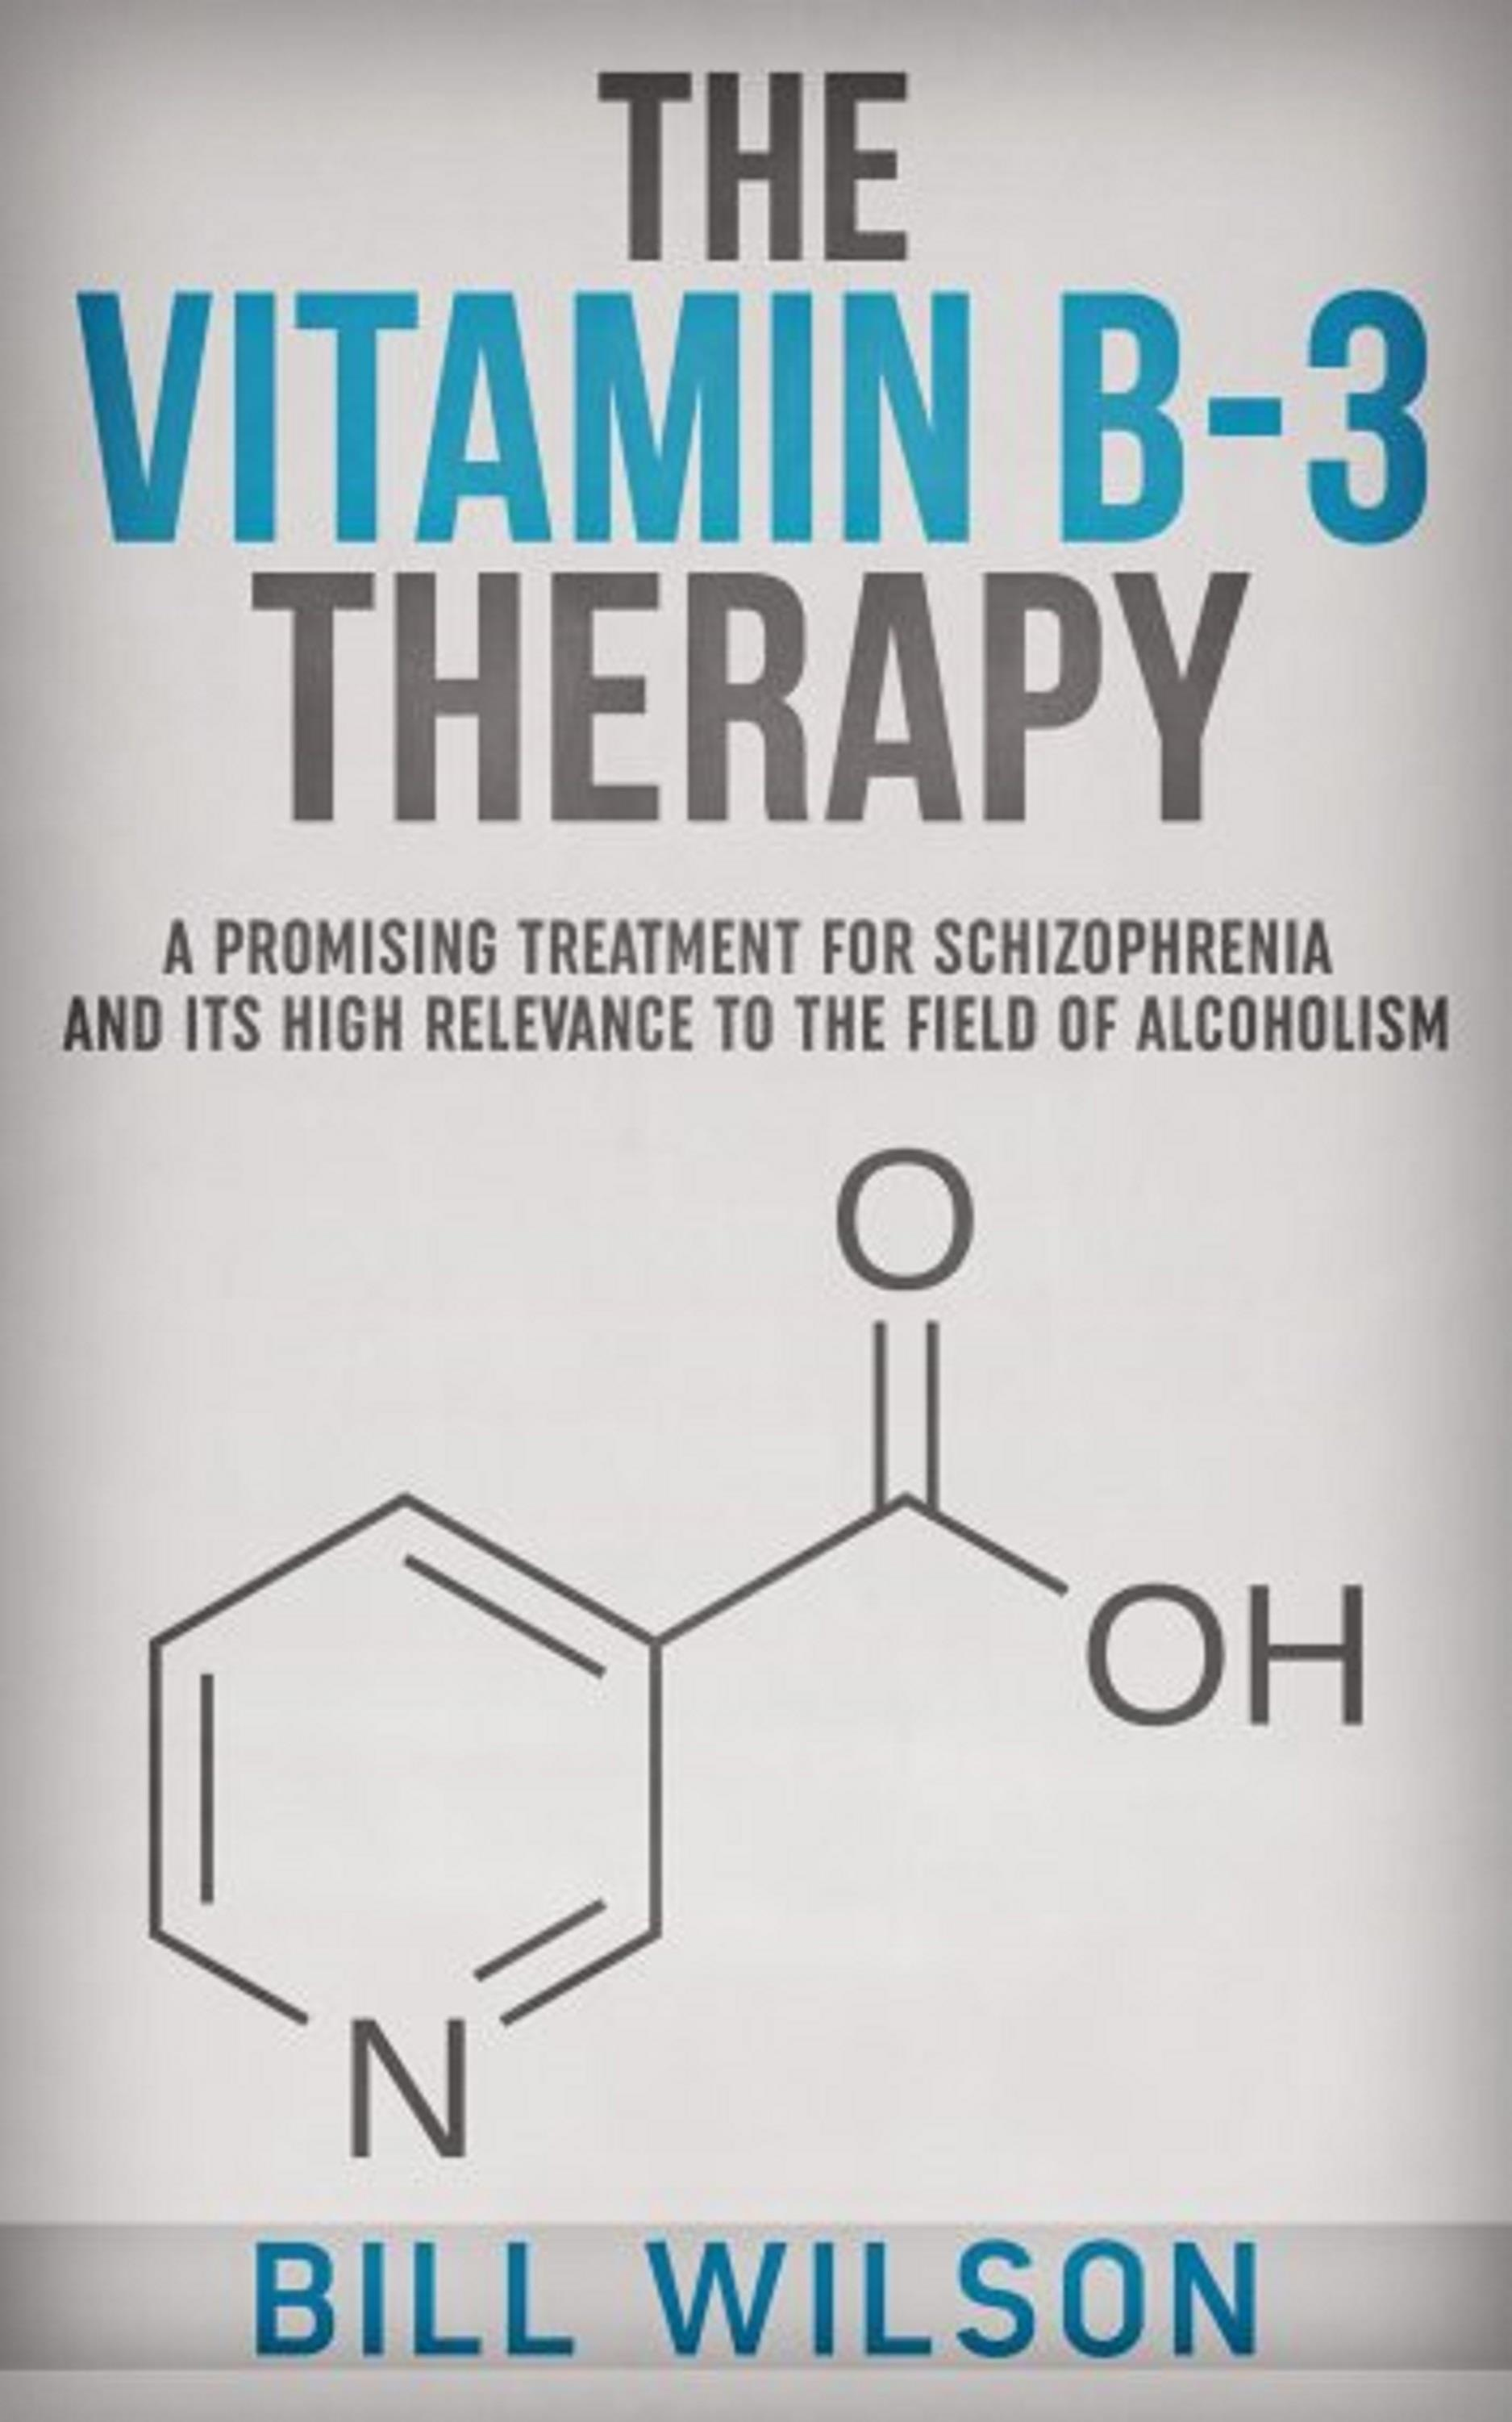 The Vitamin B-3 Therapy - A Promising Treatment for Schizophrenia and its high relevance to the field of Alcoholism